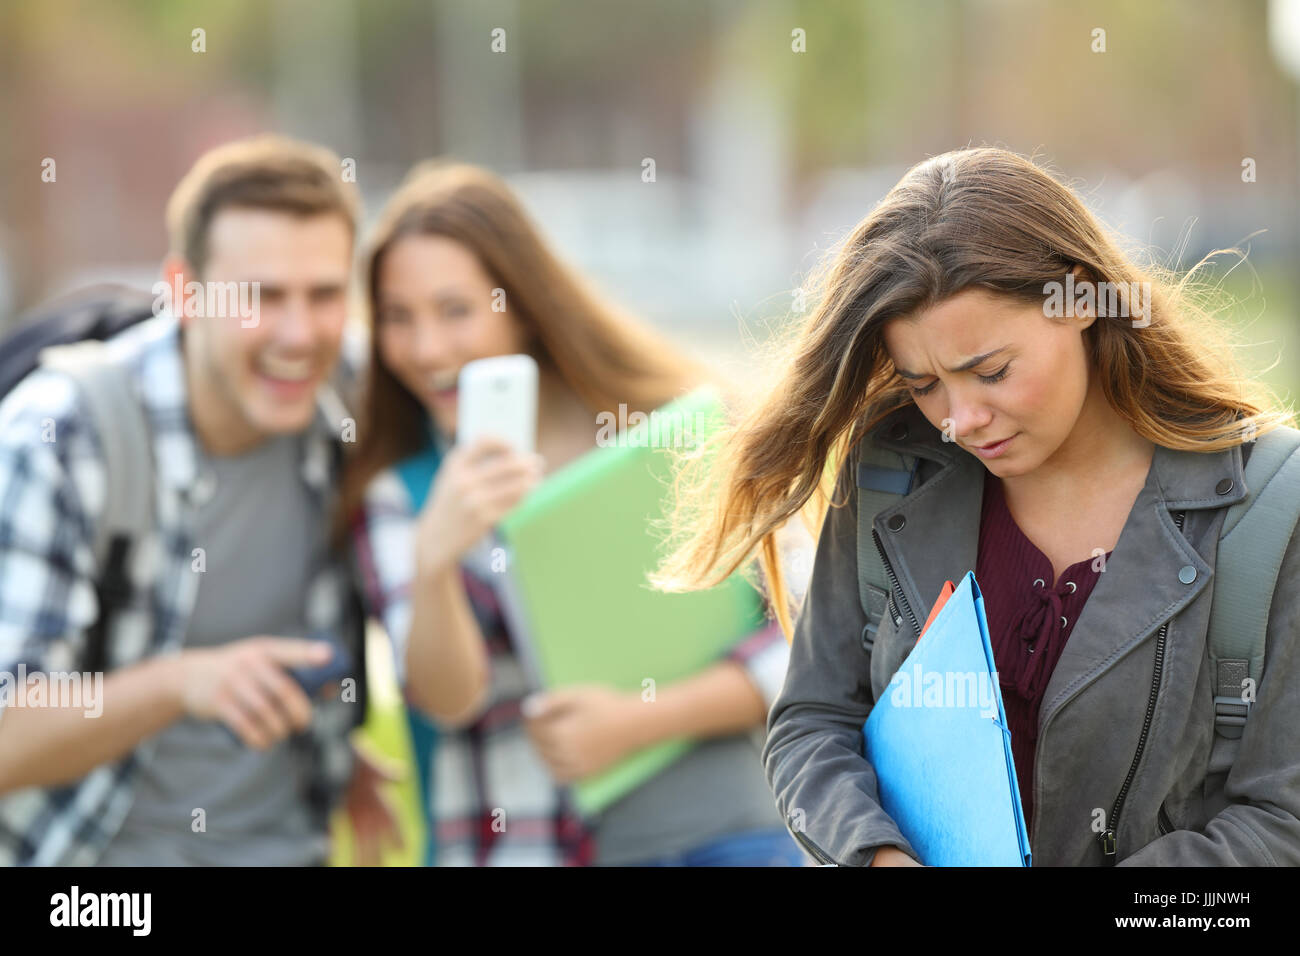 Bullying victim being video recorded on a smartphone by classmates in the street with a unfocused background - Stock Image